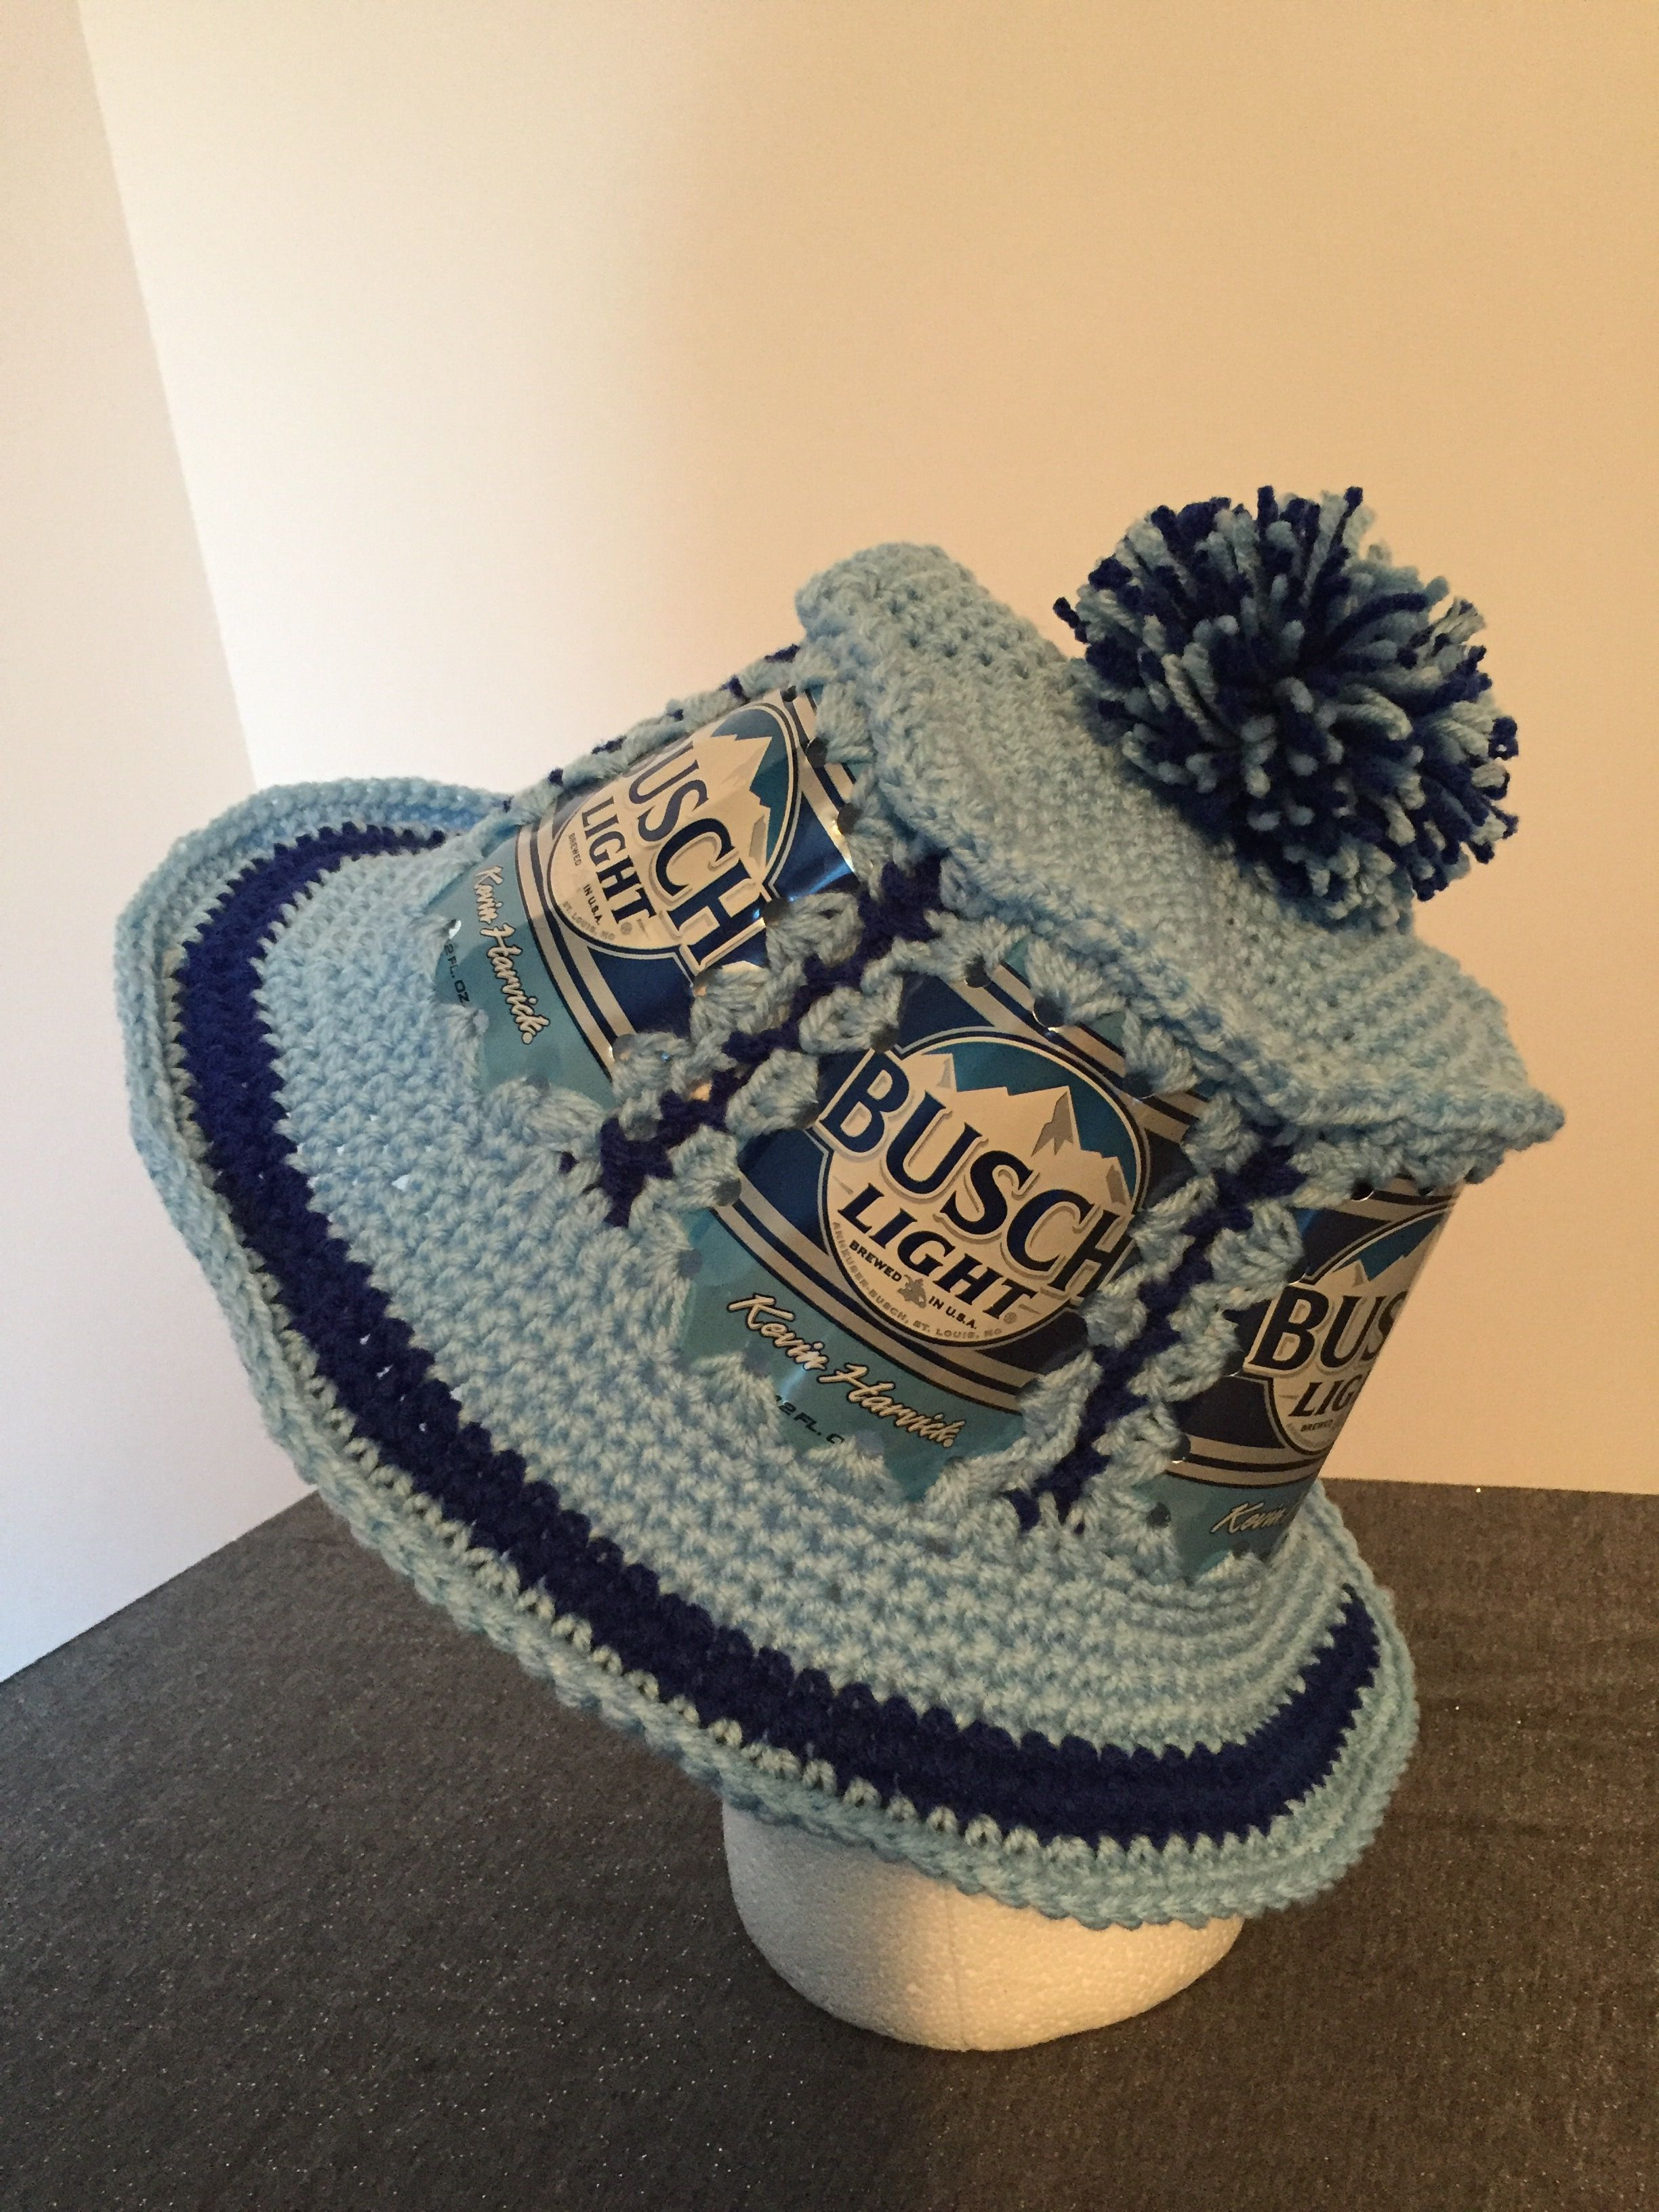 Kevin Harvick Busch Light beer can hat. | RemadeBarMaid | Pinterest